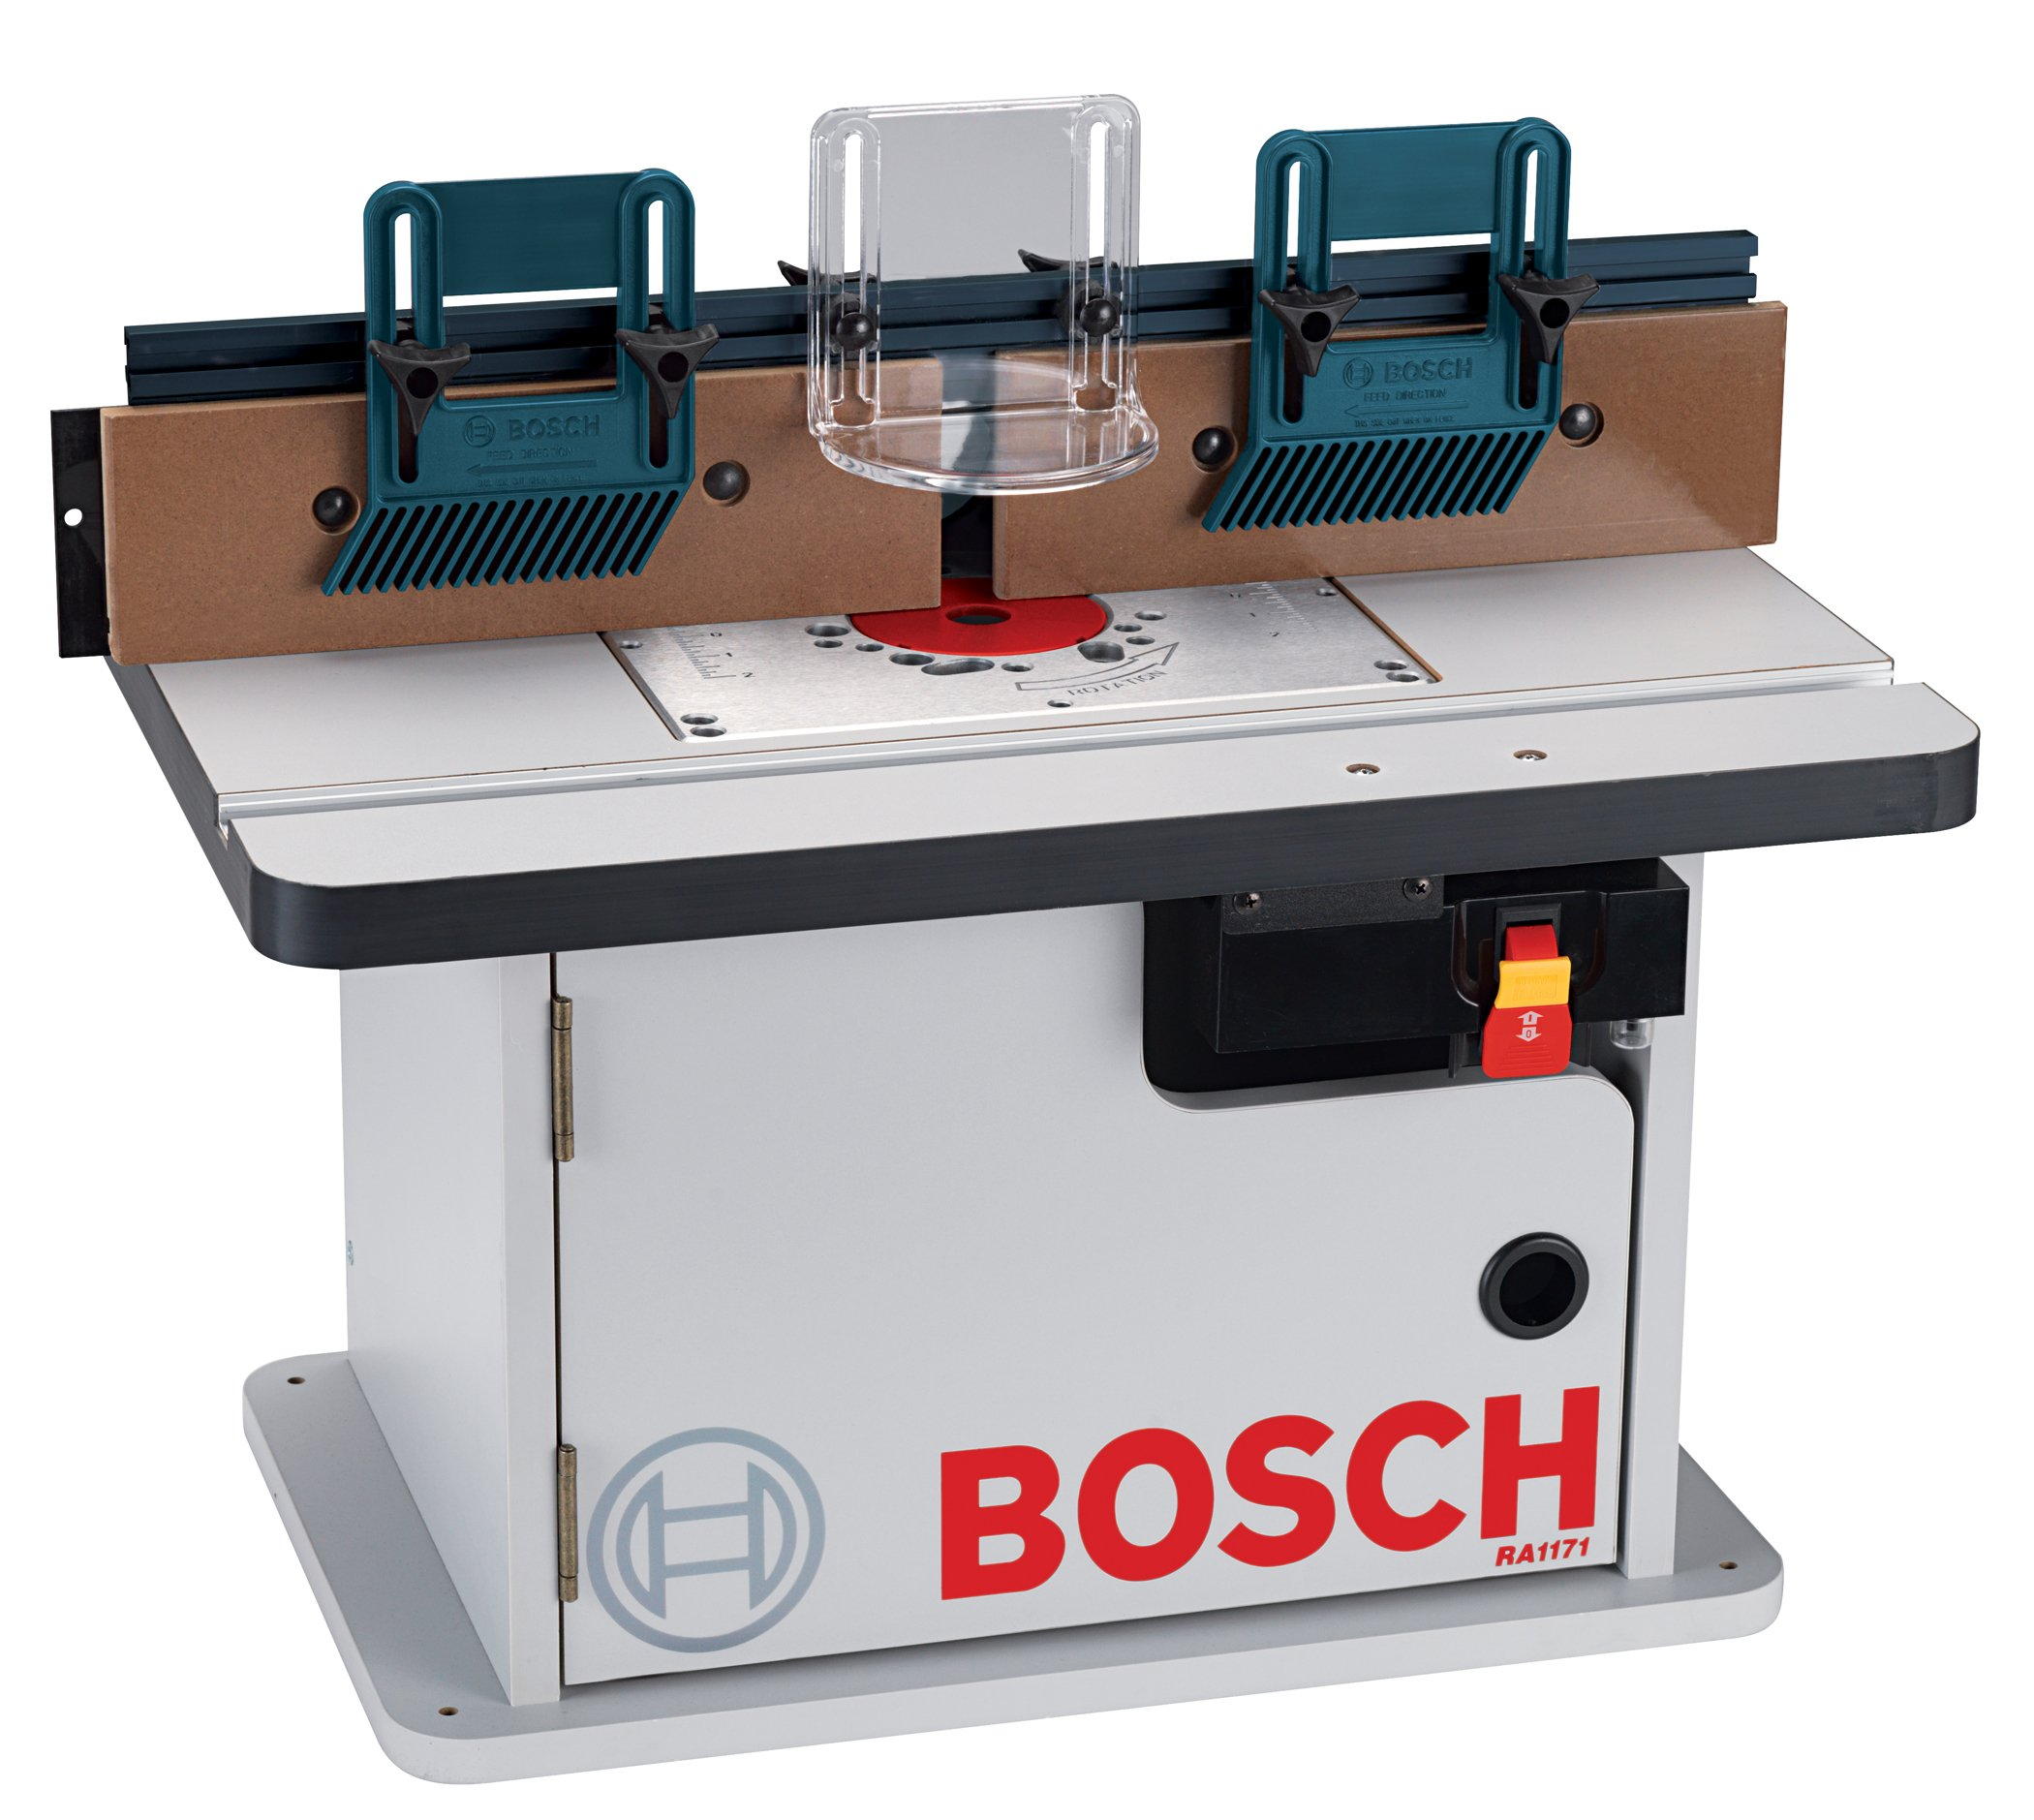 Router tables amazon bosch ra1171 cabinet style router table greentooth Image collections